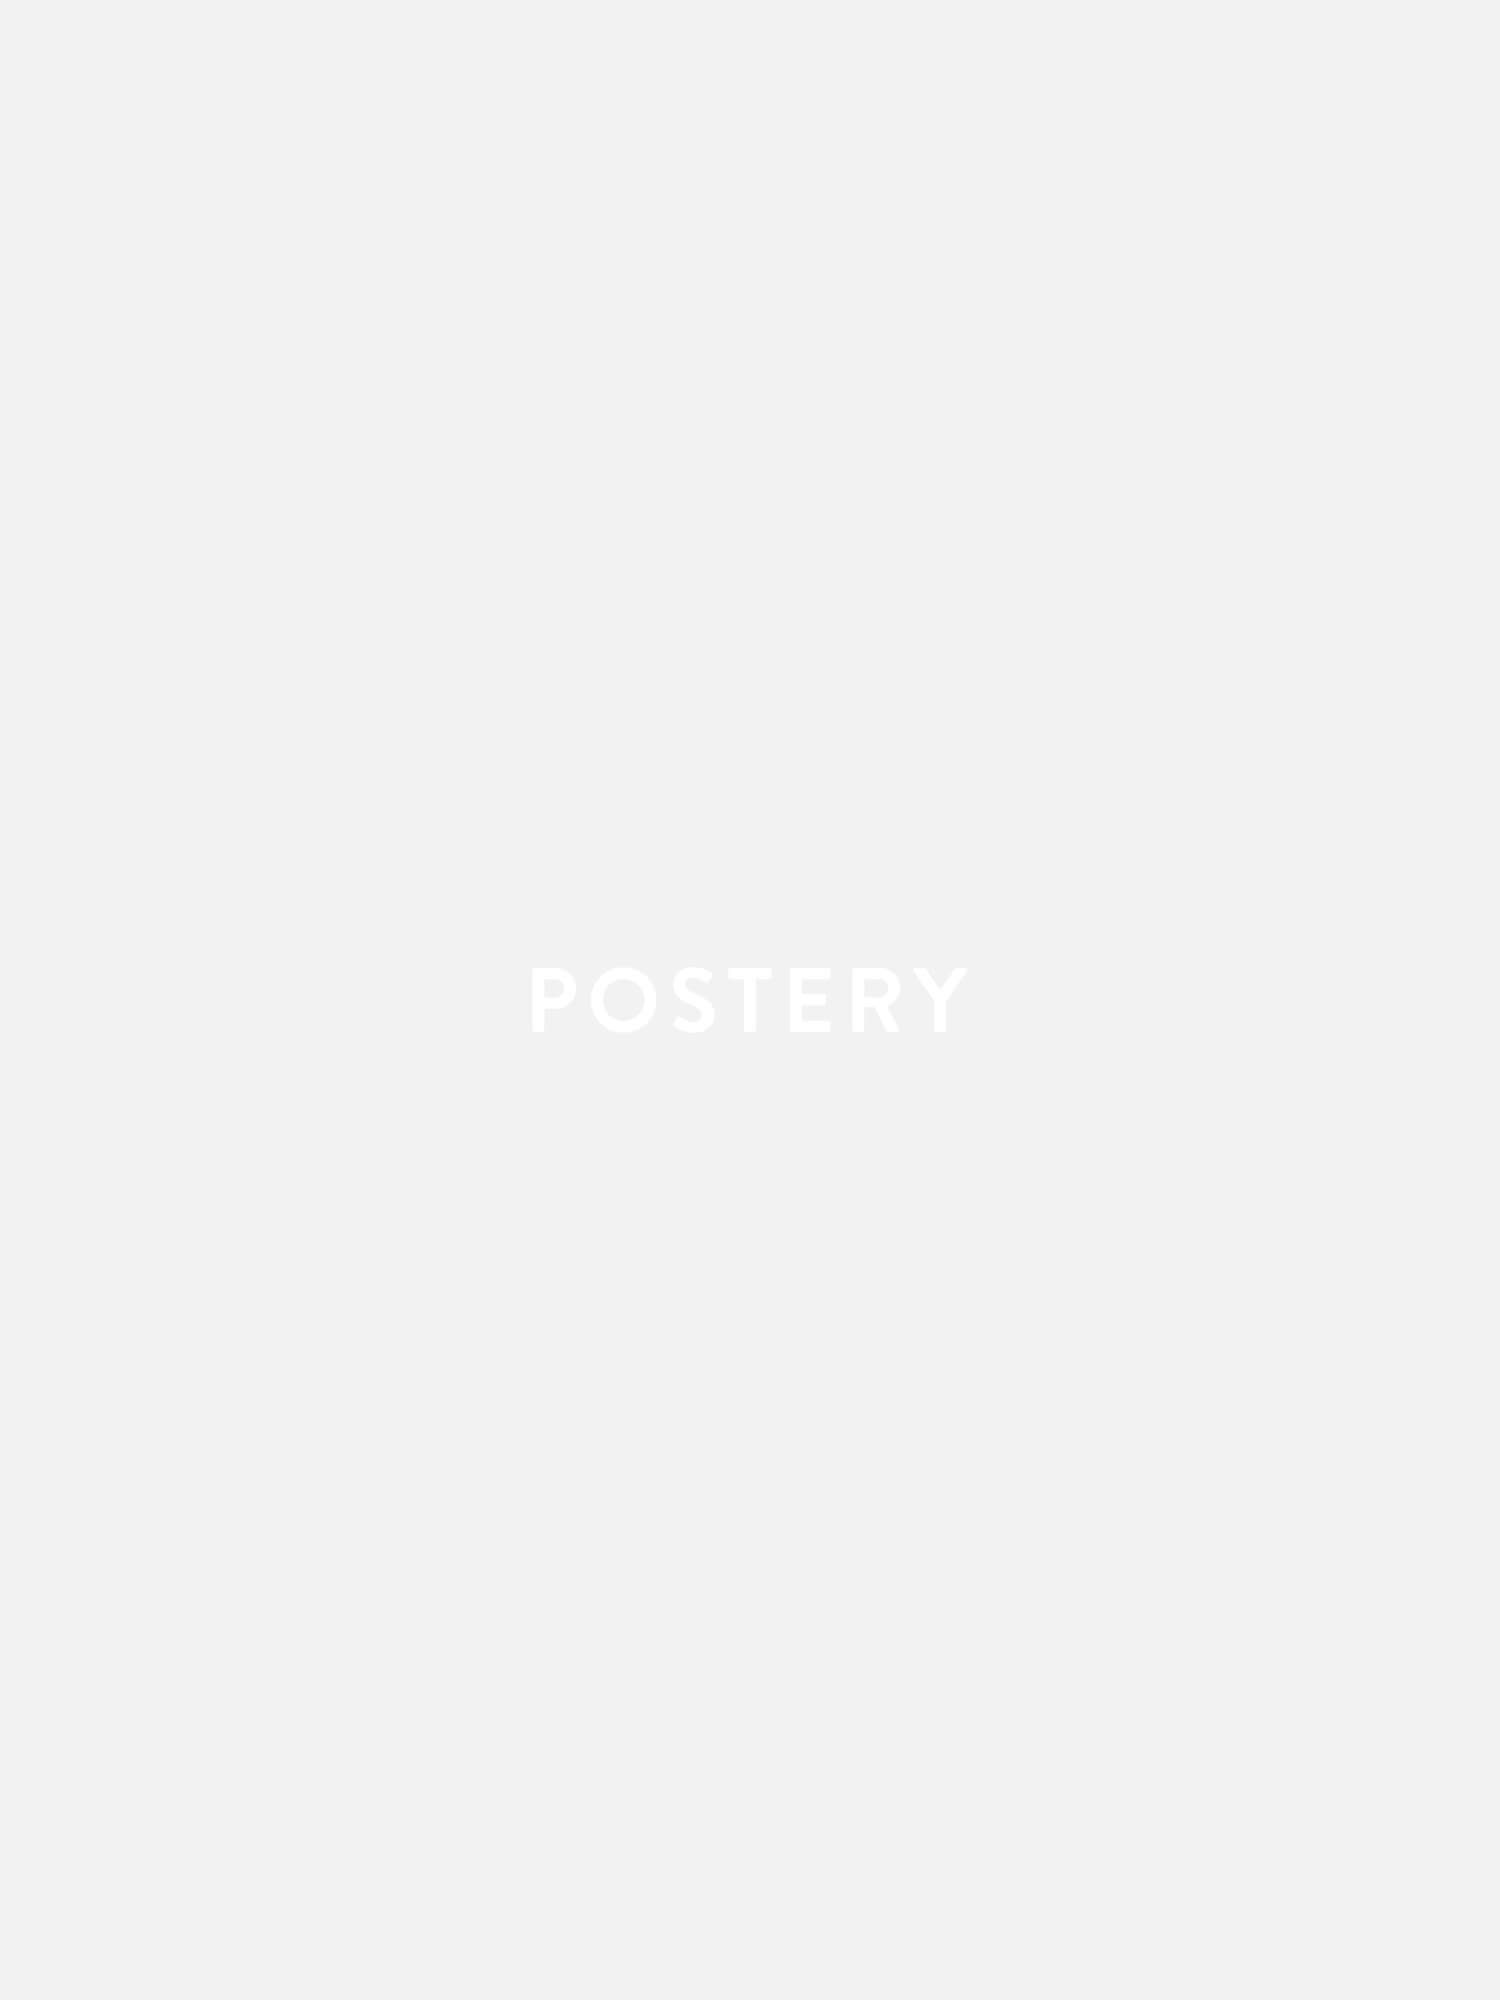 Dry Martini Cocktail Poster